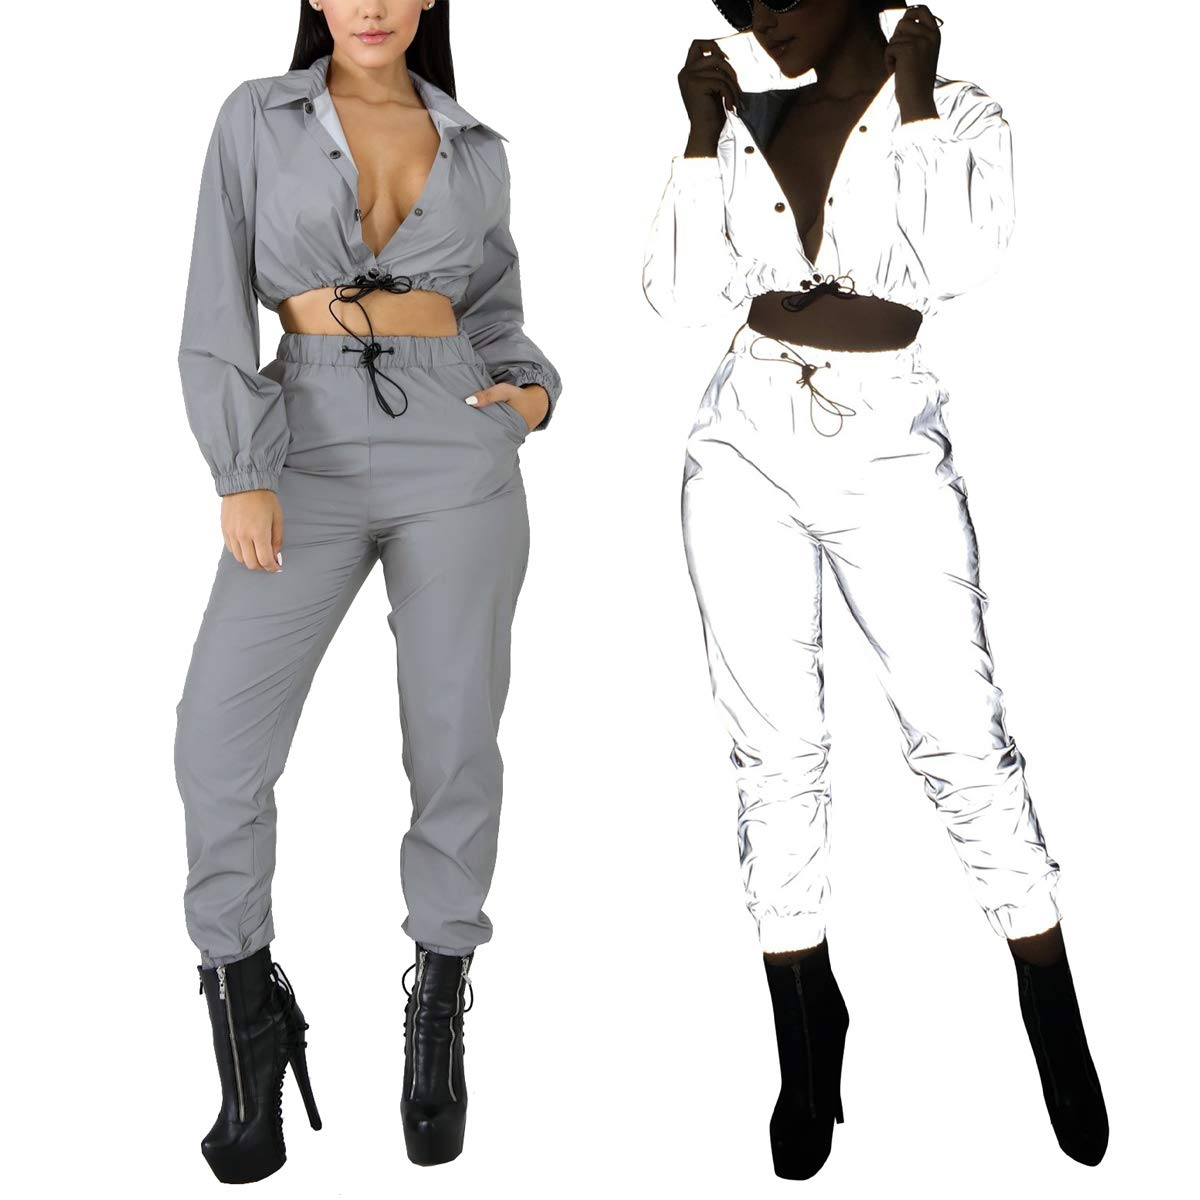 86a274a719e8 LKOUS Women's 2 Pieces Outfits Reflective Long Sleeve Jacket Crop Tops and  High Waist Long Pants Tracksuit Jumpsuit Set at Amazon Women's Clothing  store: